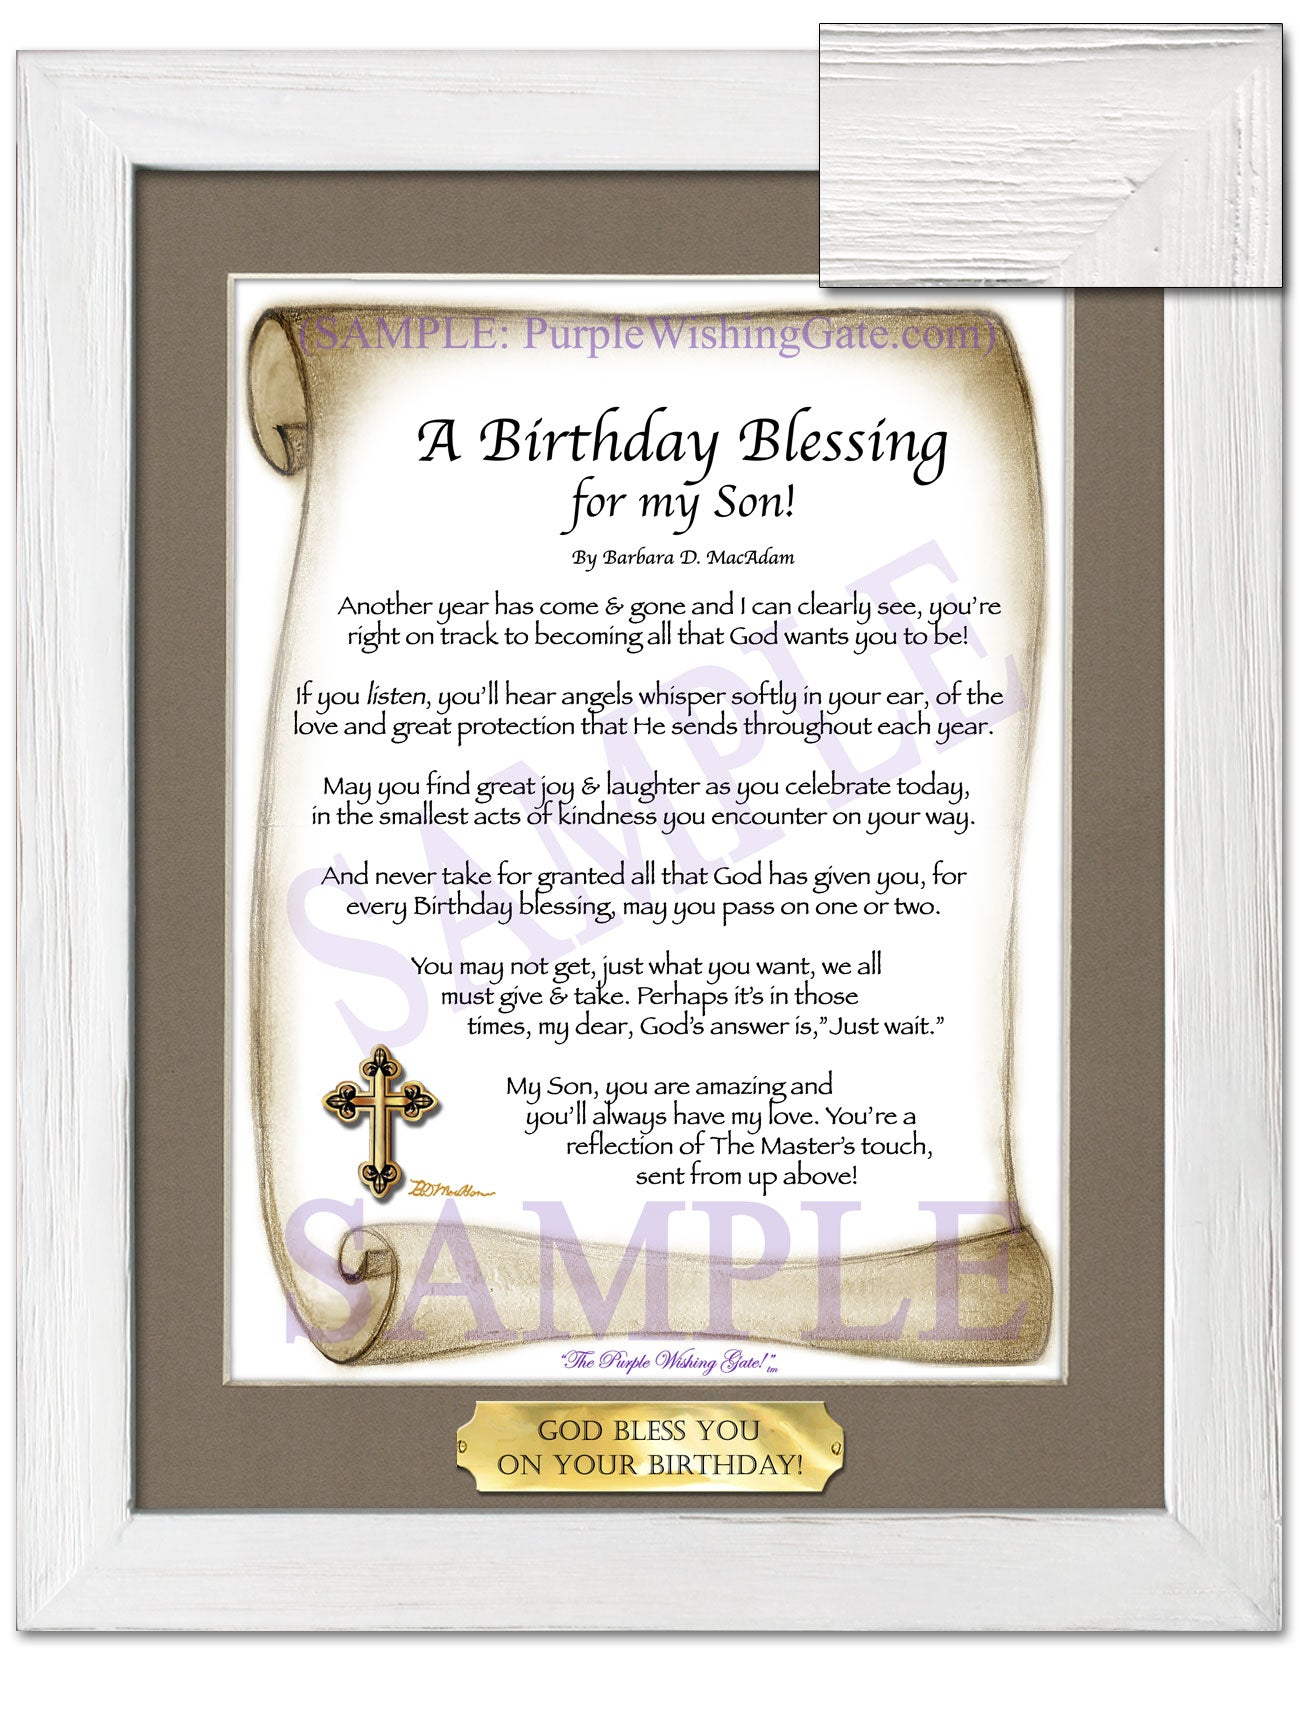 A Birthday Blessing for my Son! - Birthday Gift - PurpleWishingGate.com